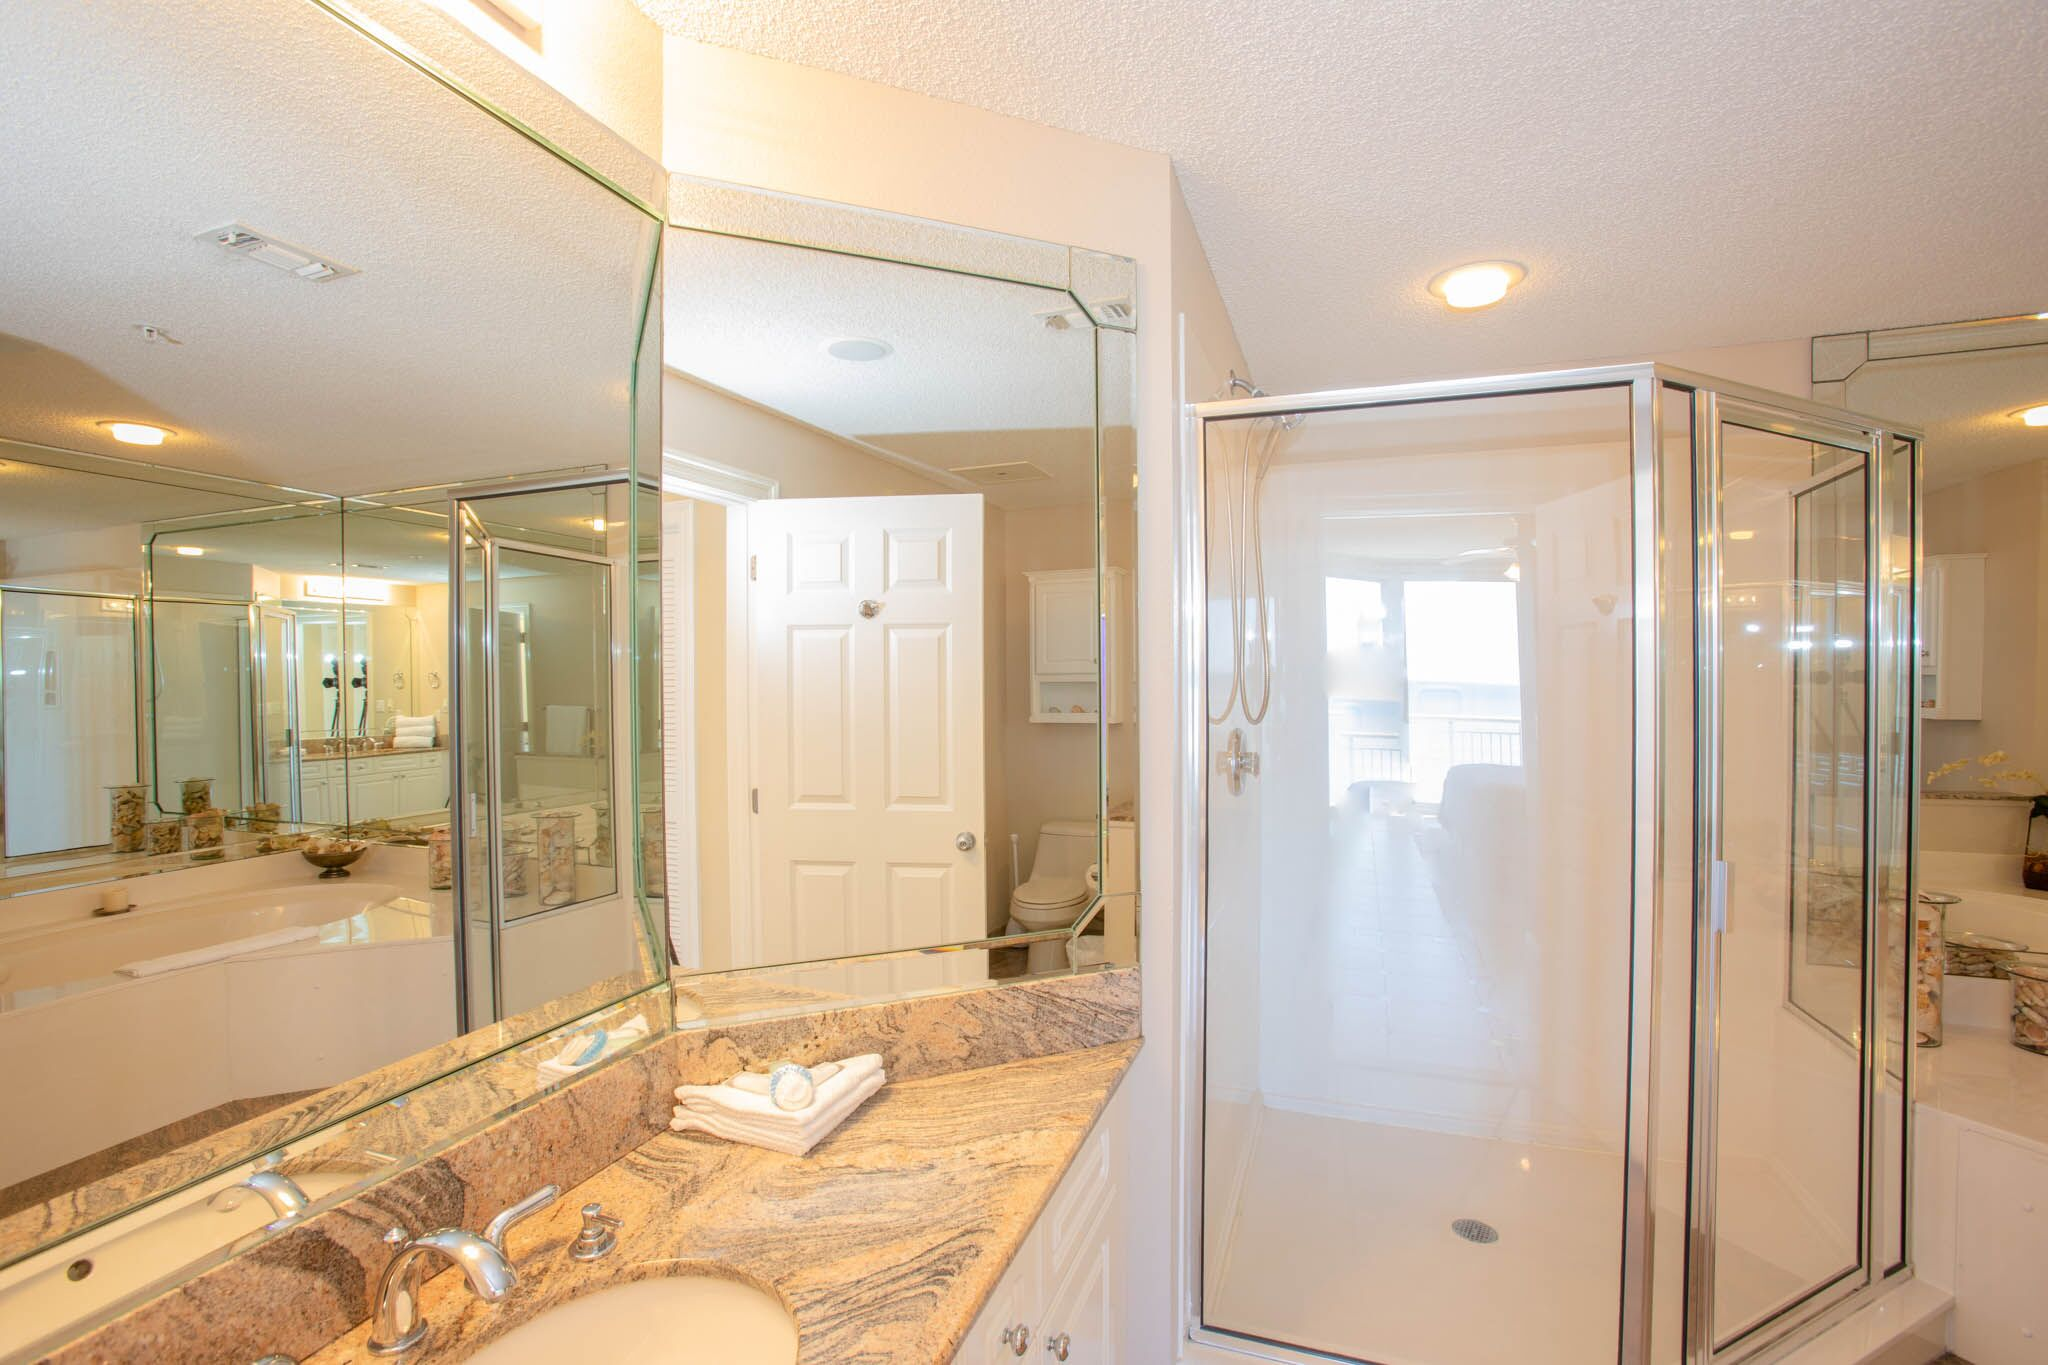 The Pearl of Navarre #504 Condo rental in The Pearl of Navarre Beach in Navarre Florida - #15